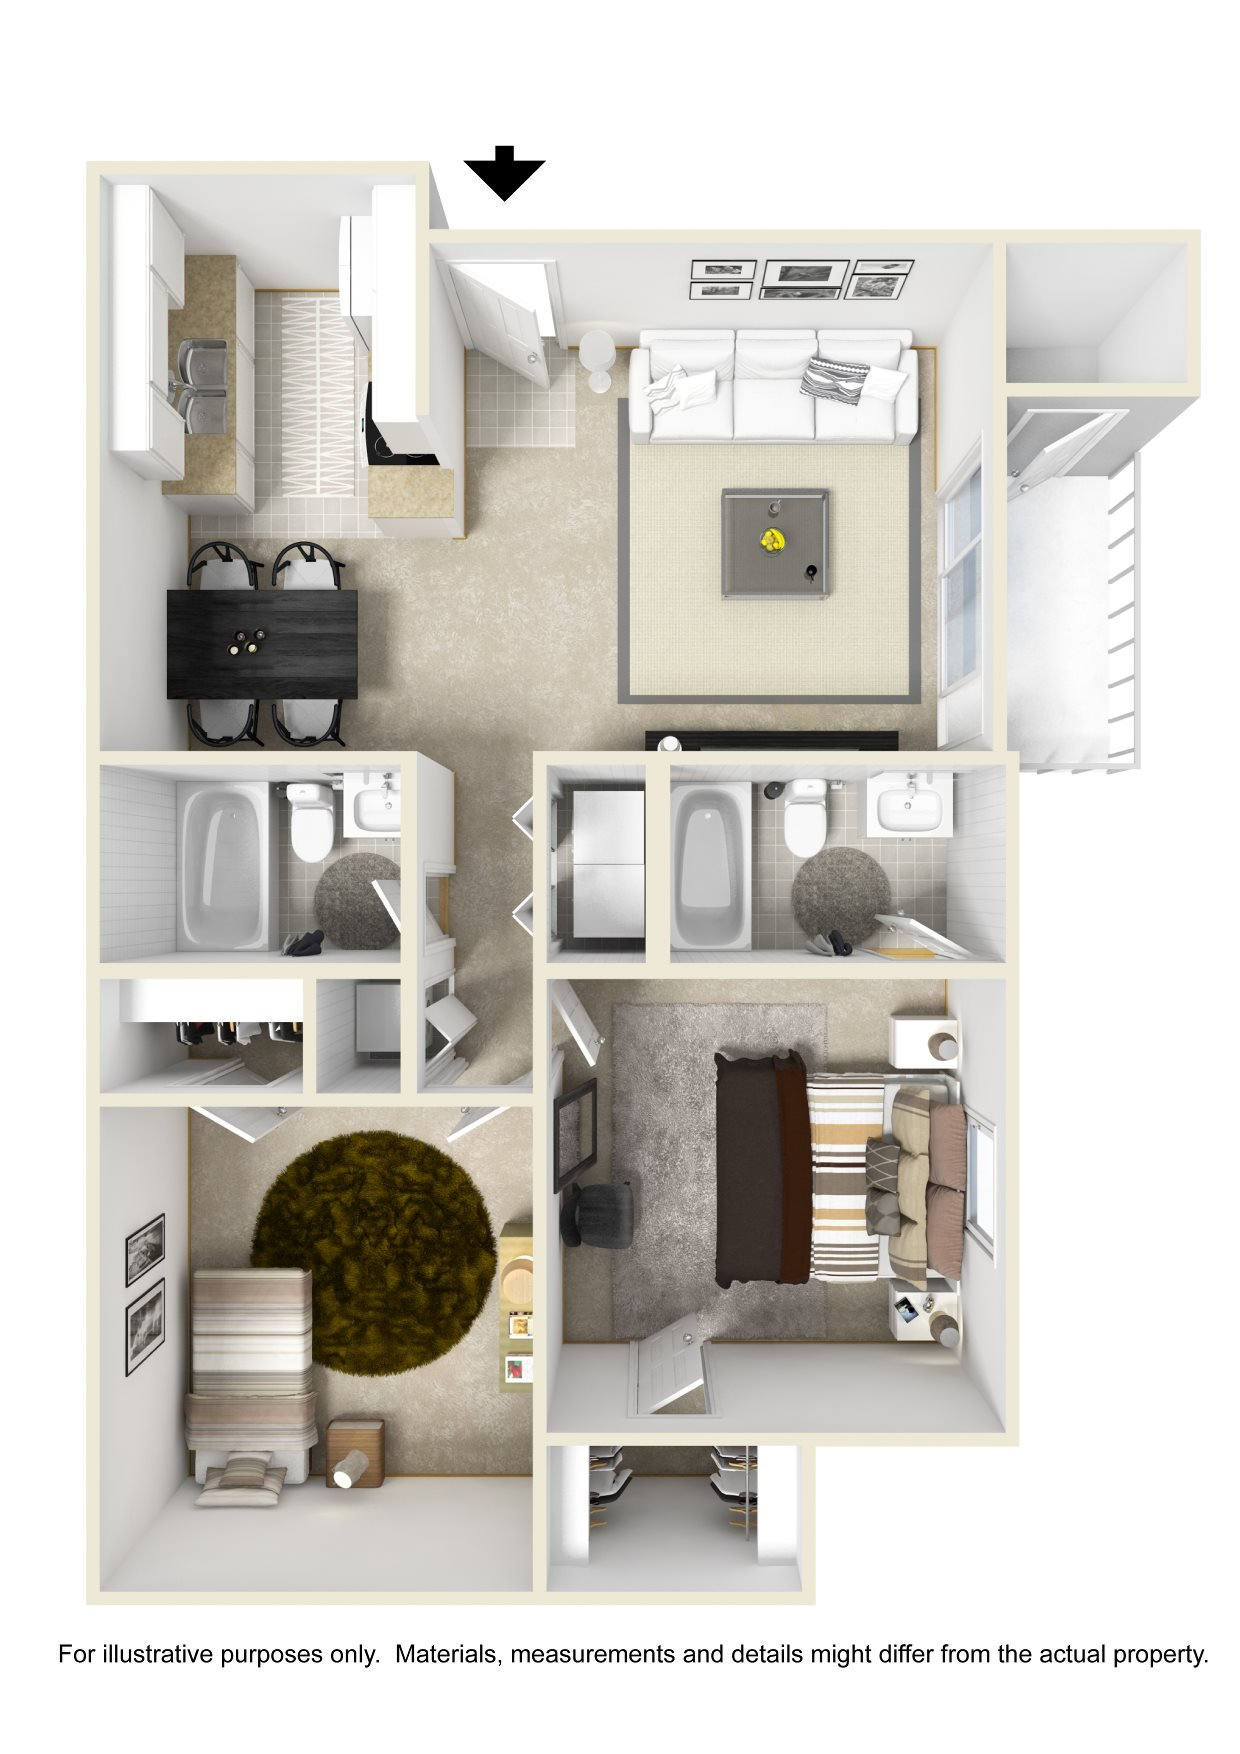 2 Bedroom Floor Plan (862 sqft)